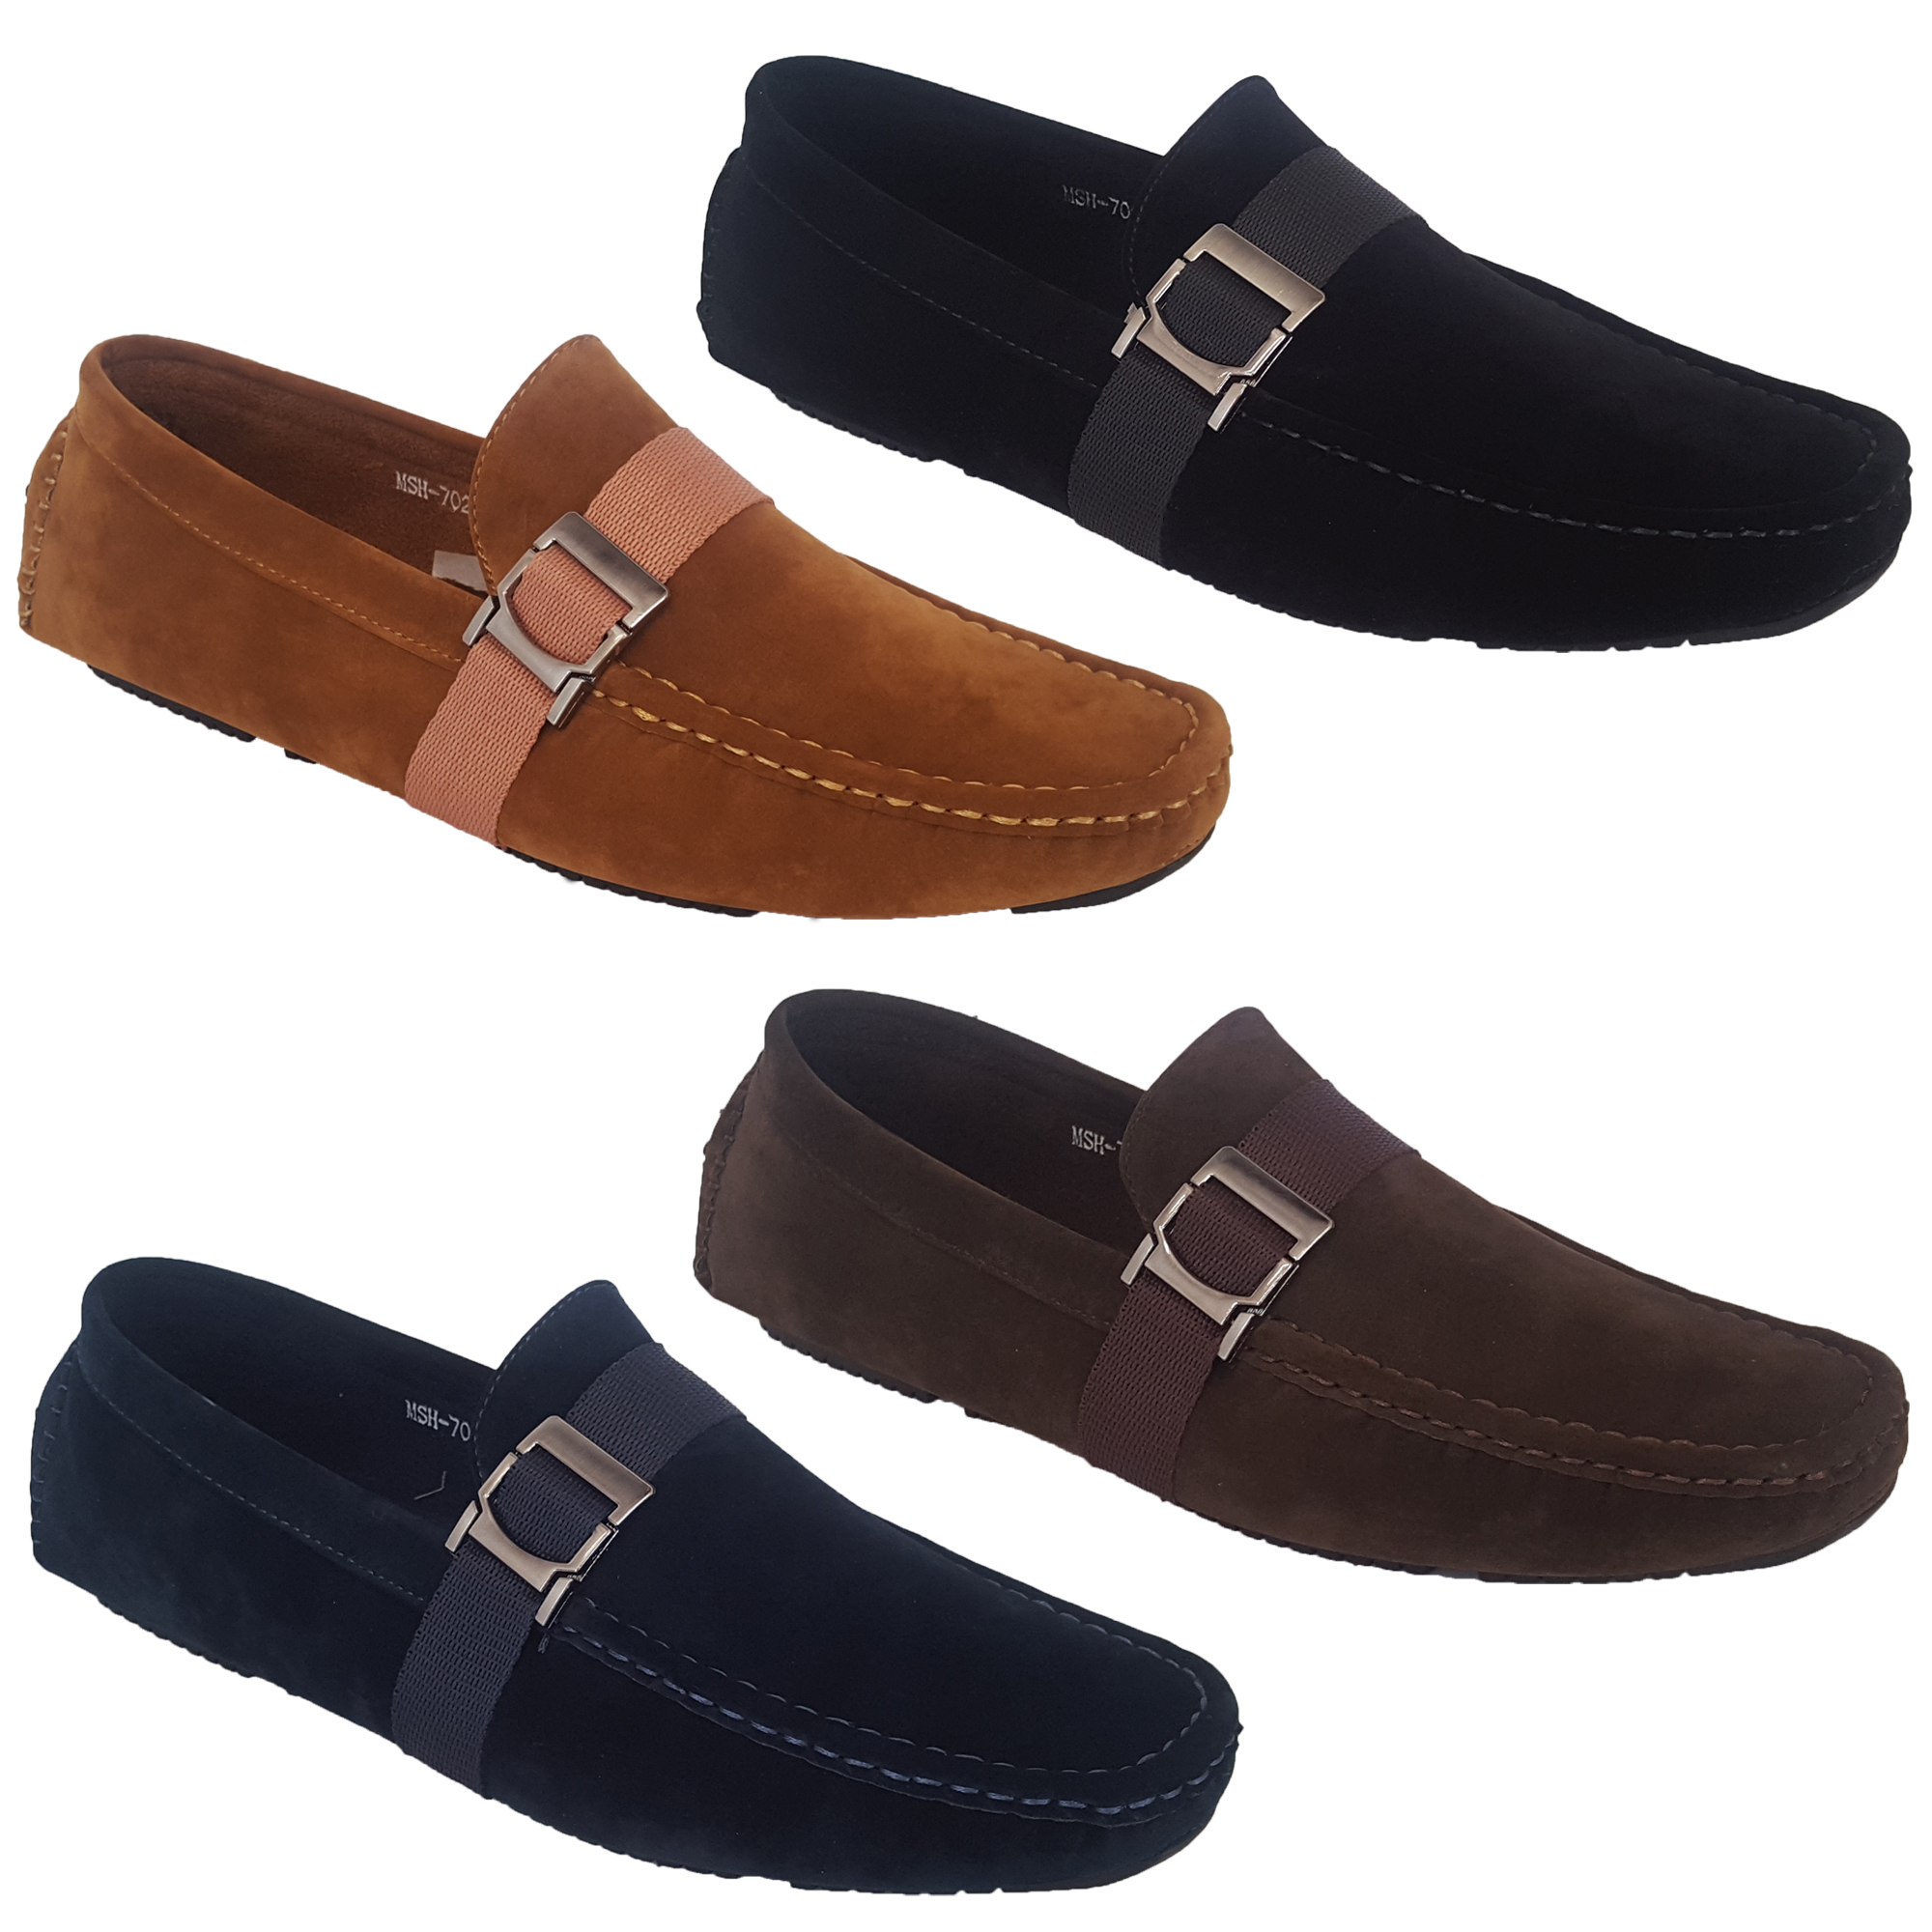 b3b78678c4f9 Mens Moccasins Suede Look Shoes Driving Loafers Slip On Boat Wedding ...